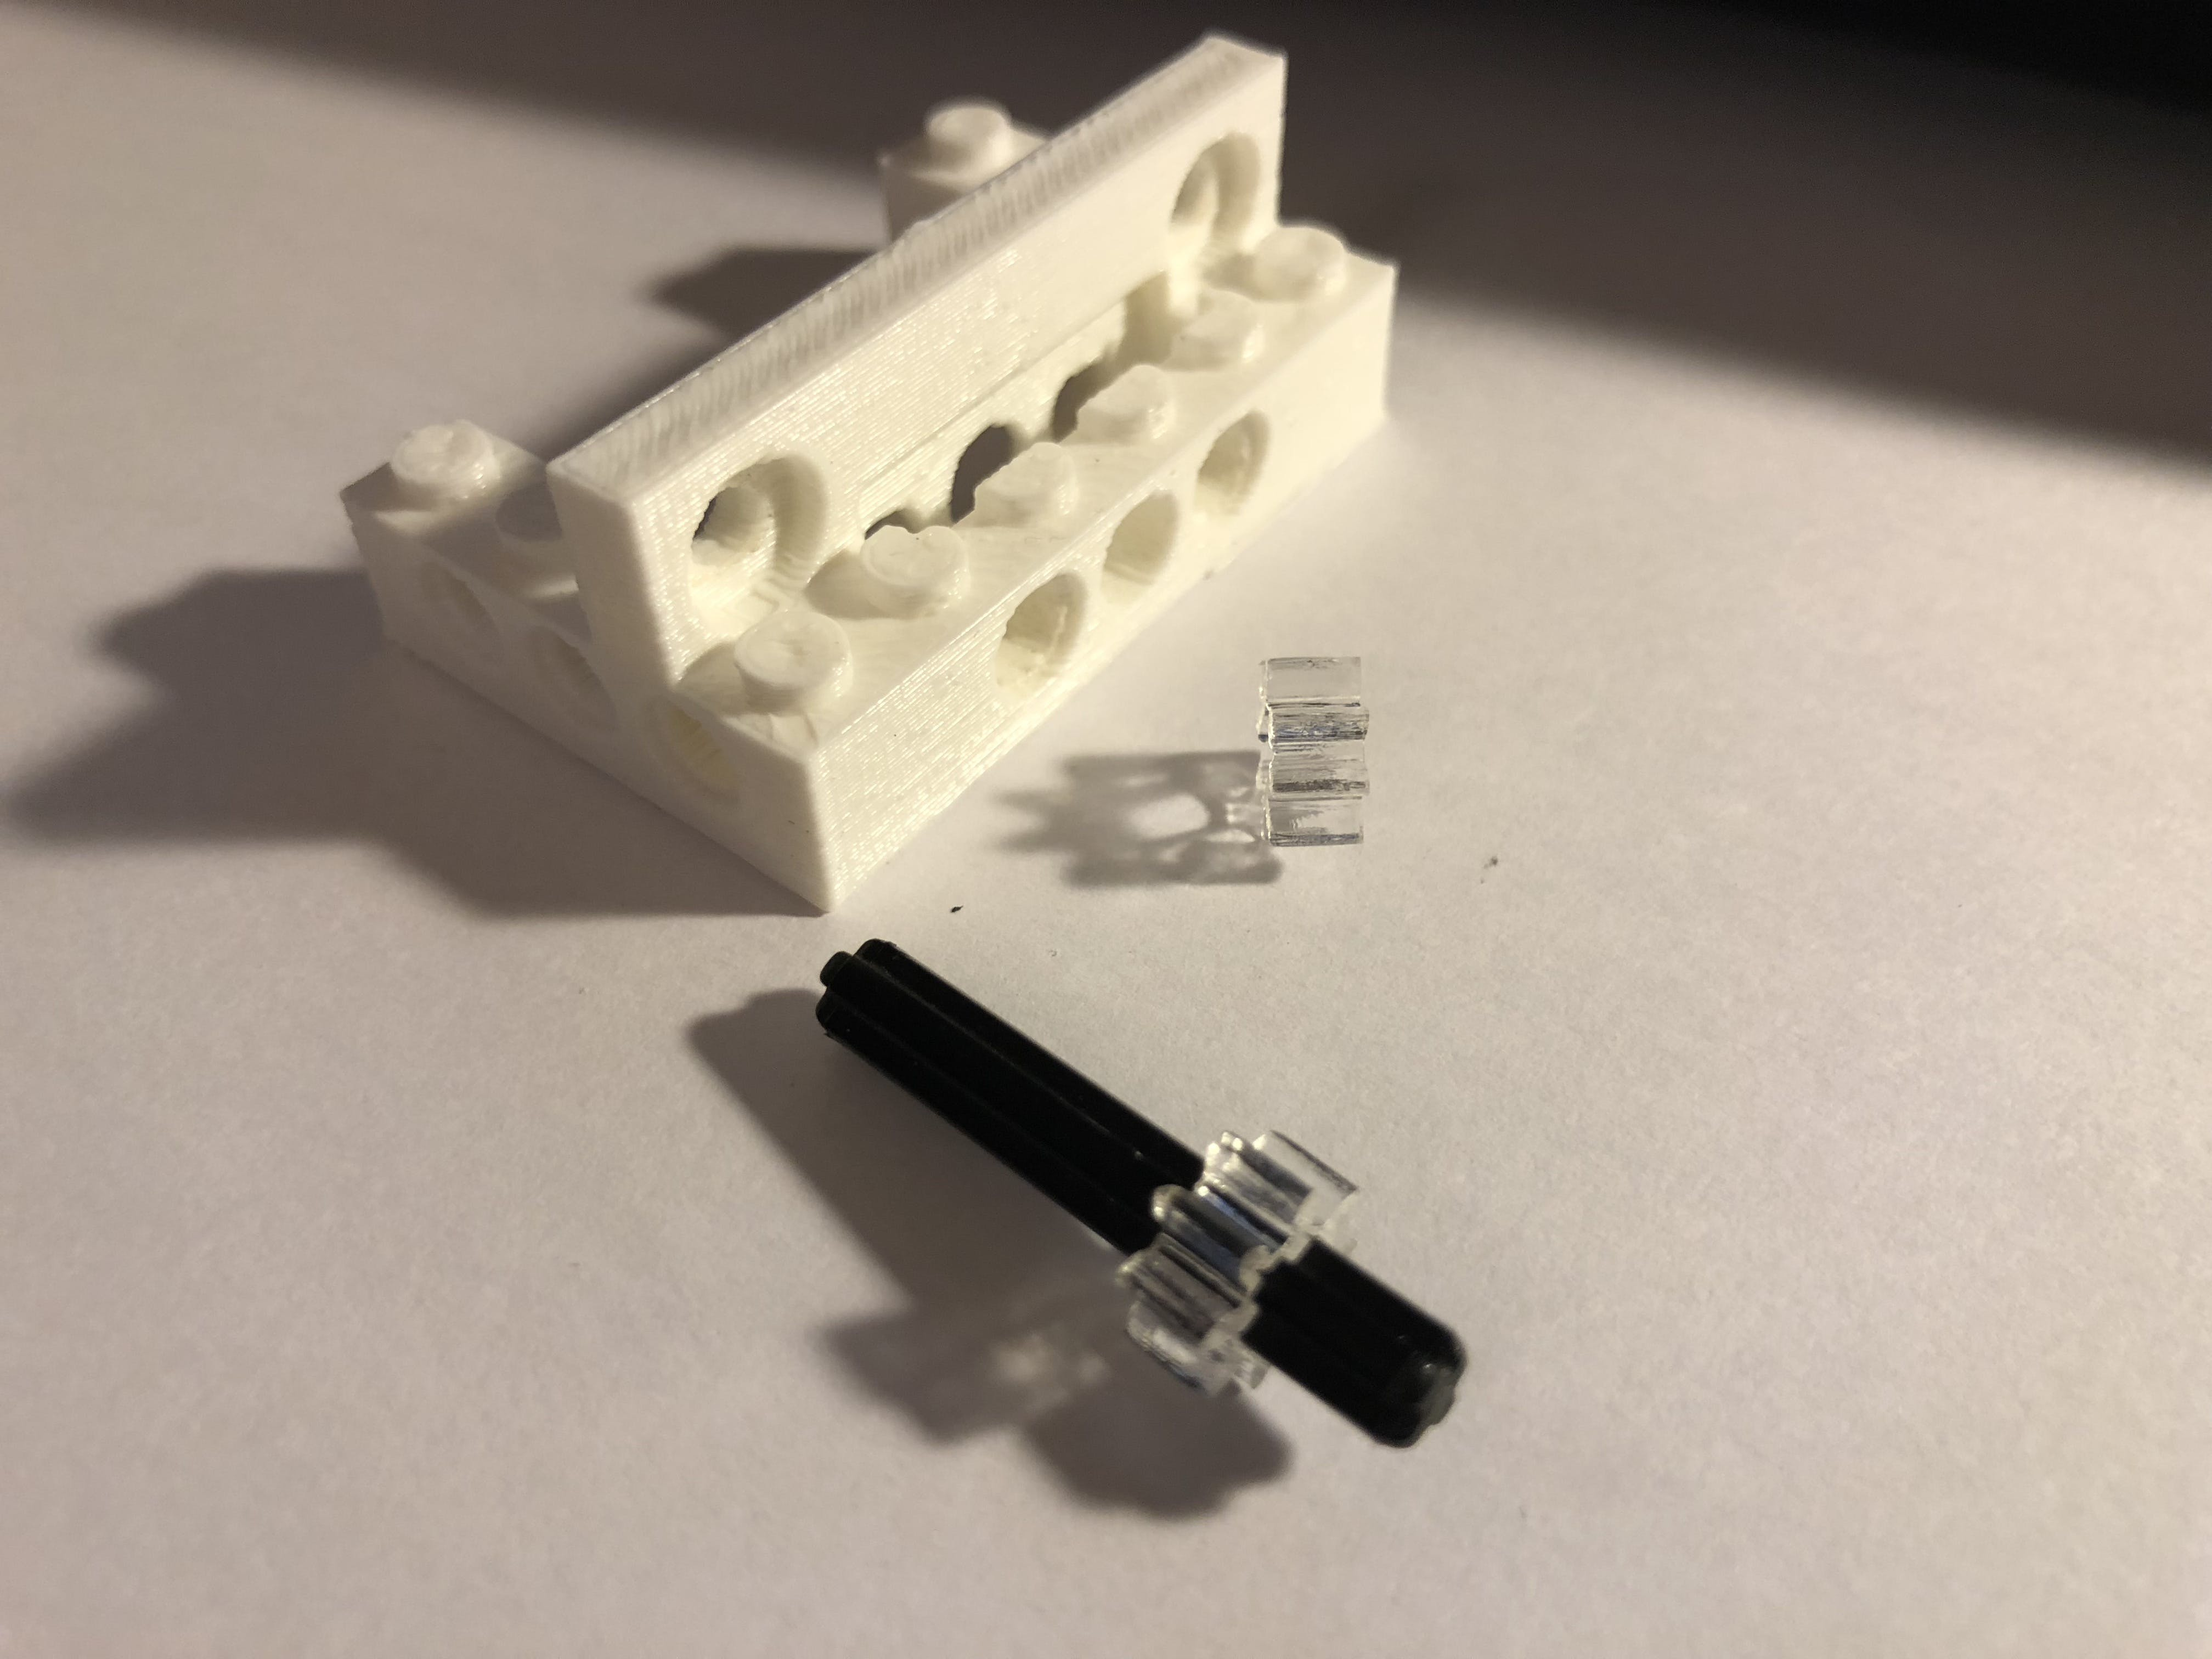 3D-printed stepper lego brick. Laser cut gears (lego compatible).